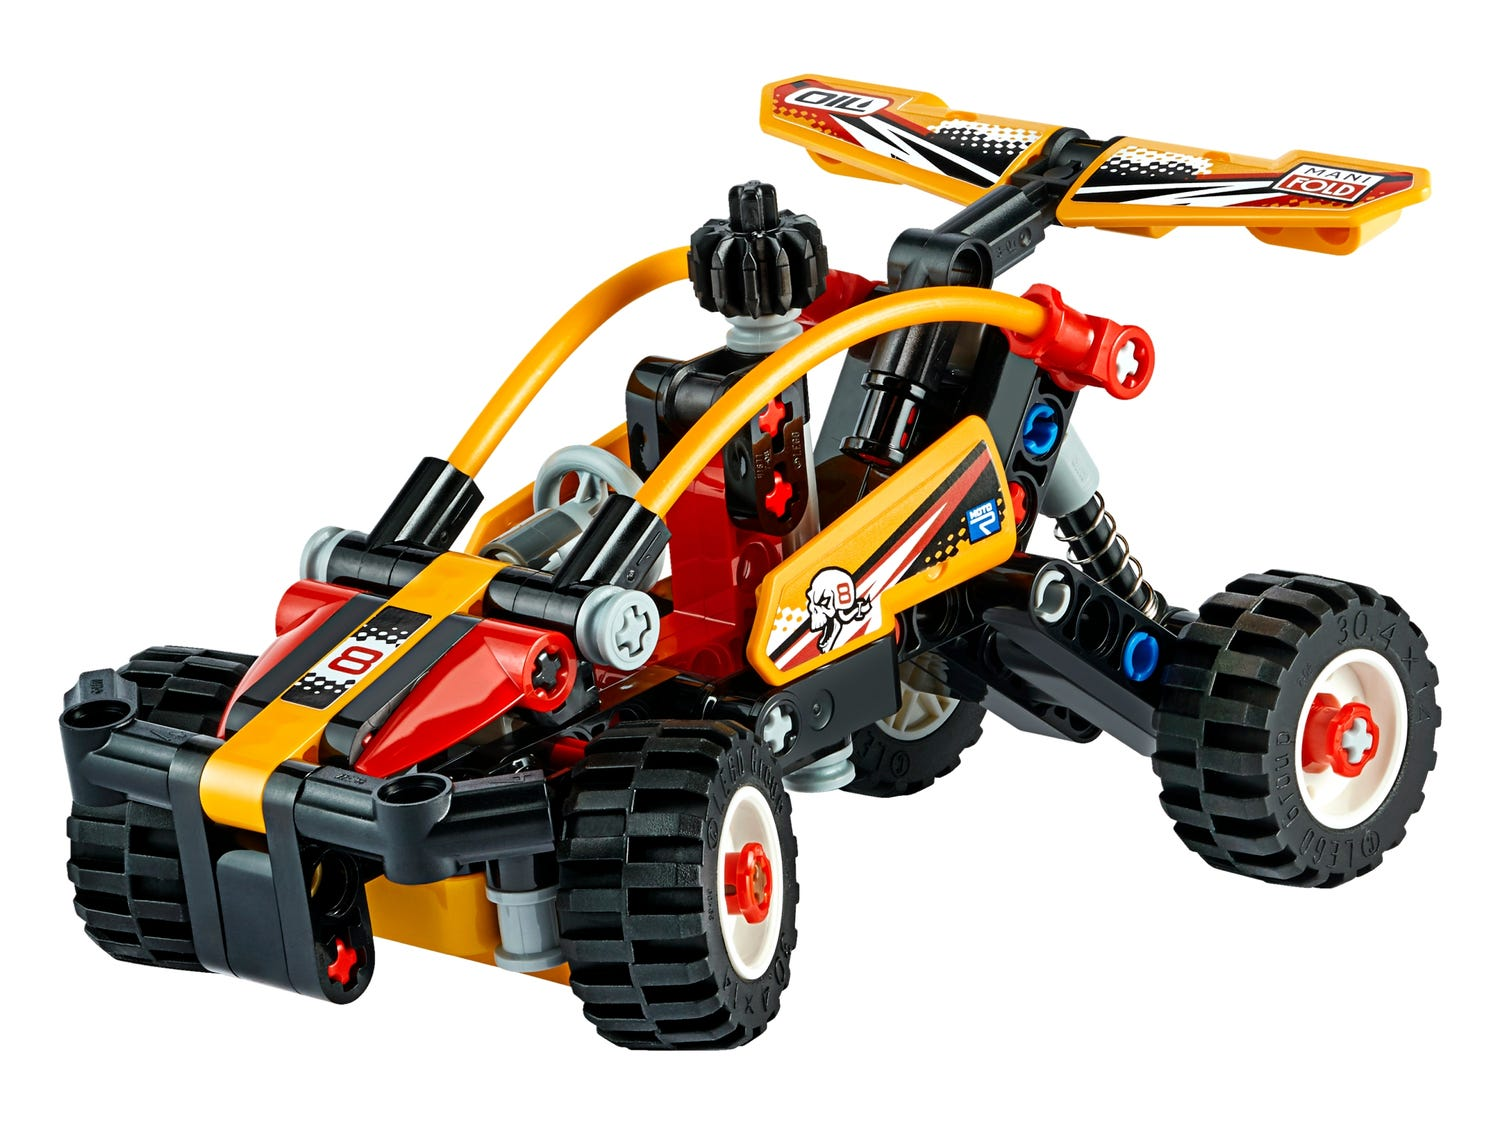 Buggy 42101 | Technic™ | Buy online at the Official LEGO® Shop GB